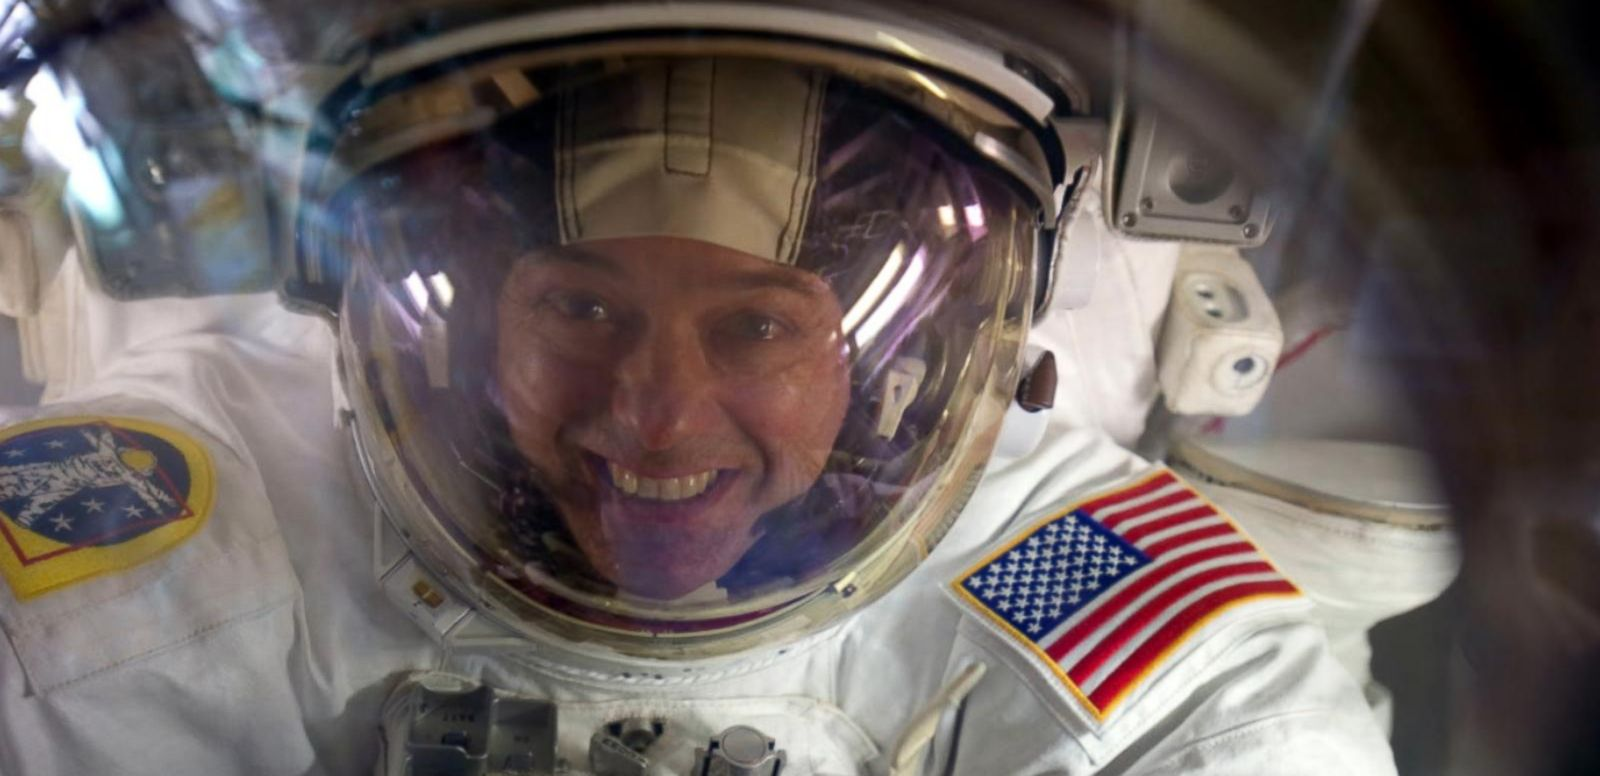 """VIDEO: Astronaut Ron Garan calls for global cooperation in new book """"The Orbital Perspective."""""""